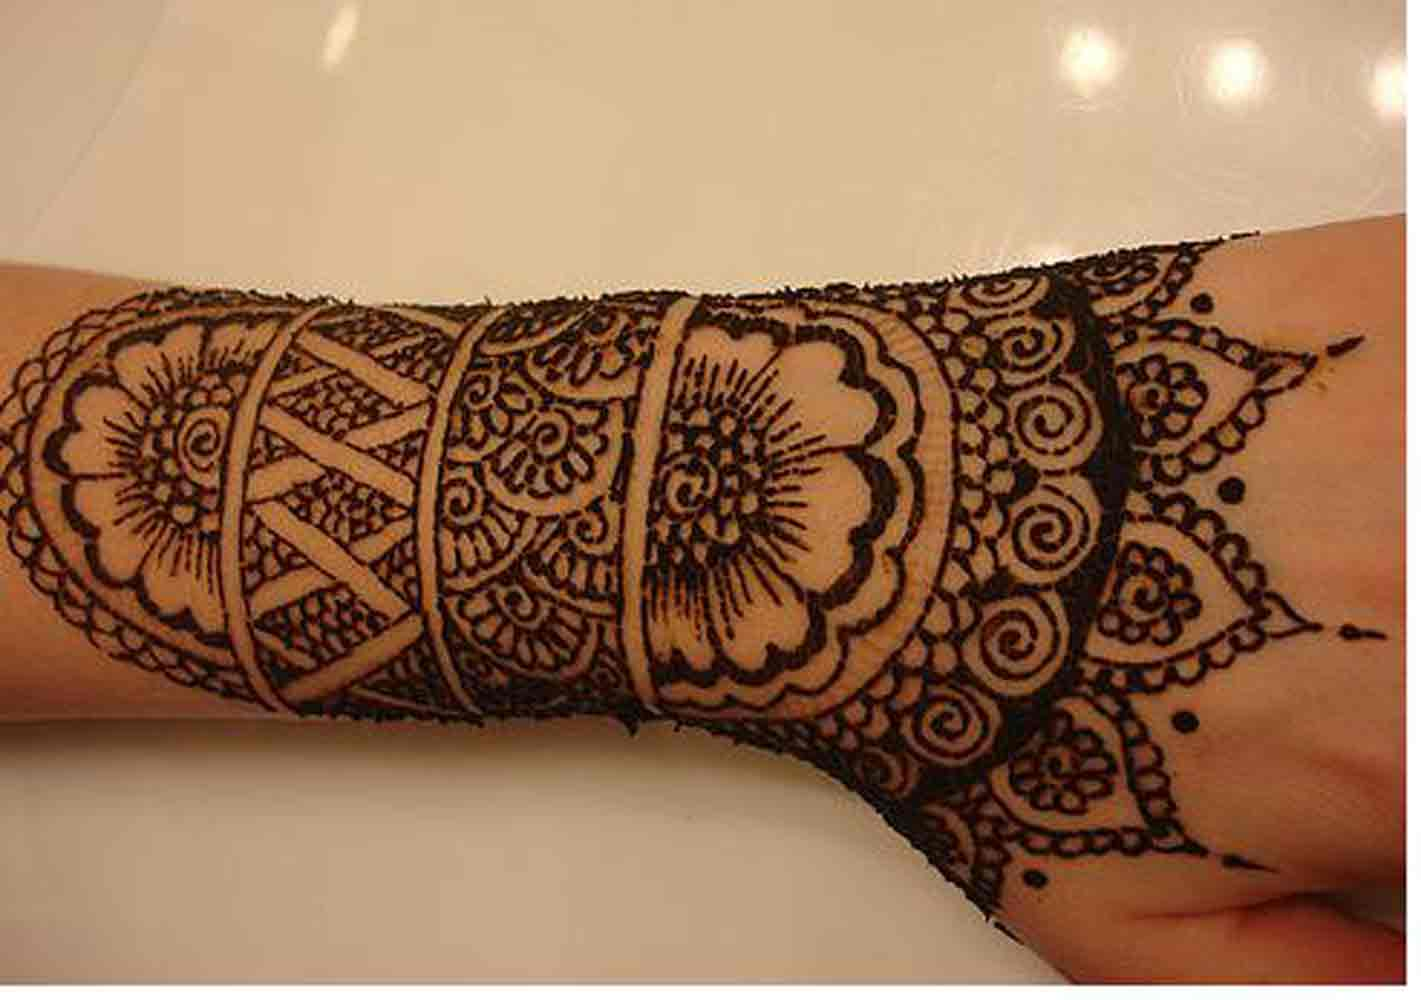 Temporary Tattoos Colorful Creations Ideas And Designs